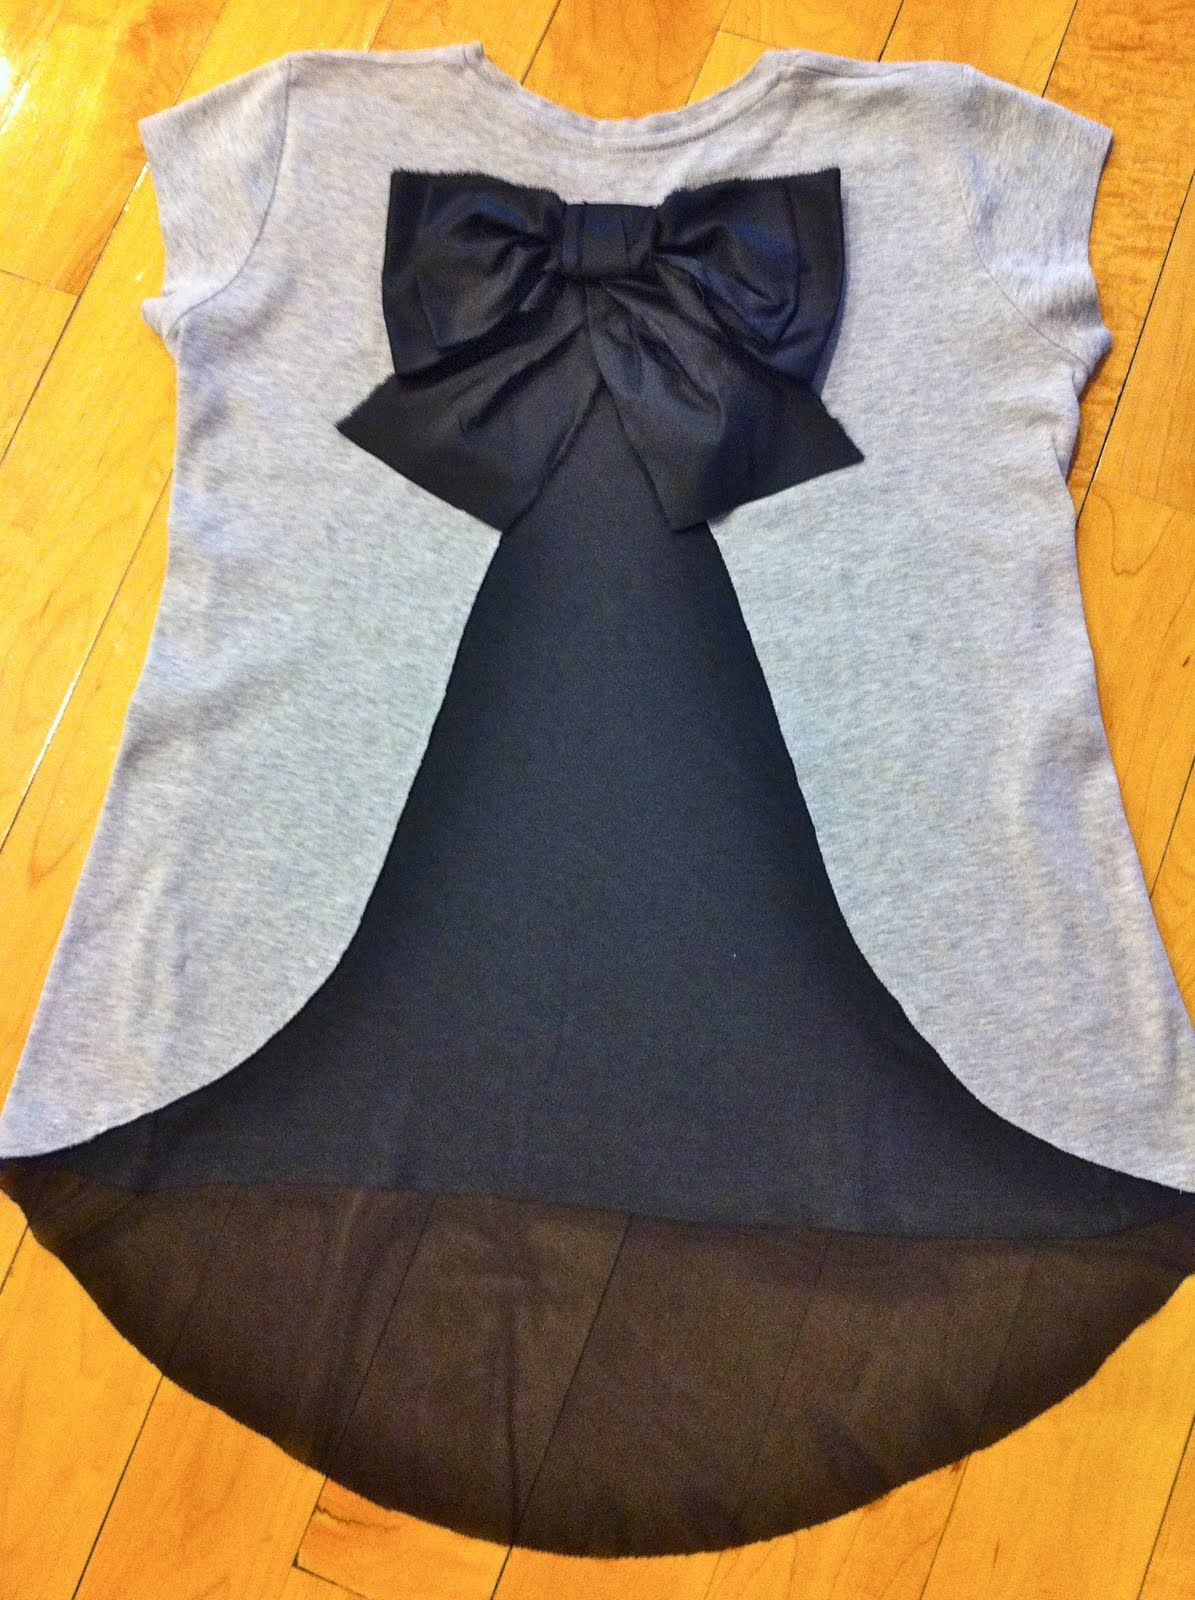 Super cute. Old T + mesh + satin. http://go.tipjunkie.com/hm/1010/inspirationrealisation.blogspot.com/2011/05/bow-on-back.html